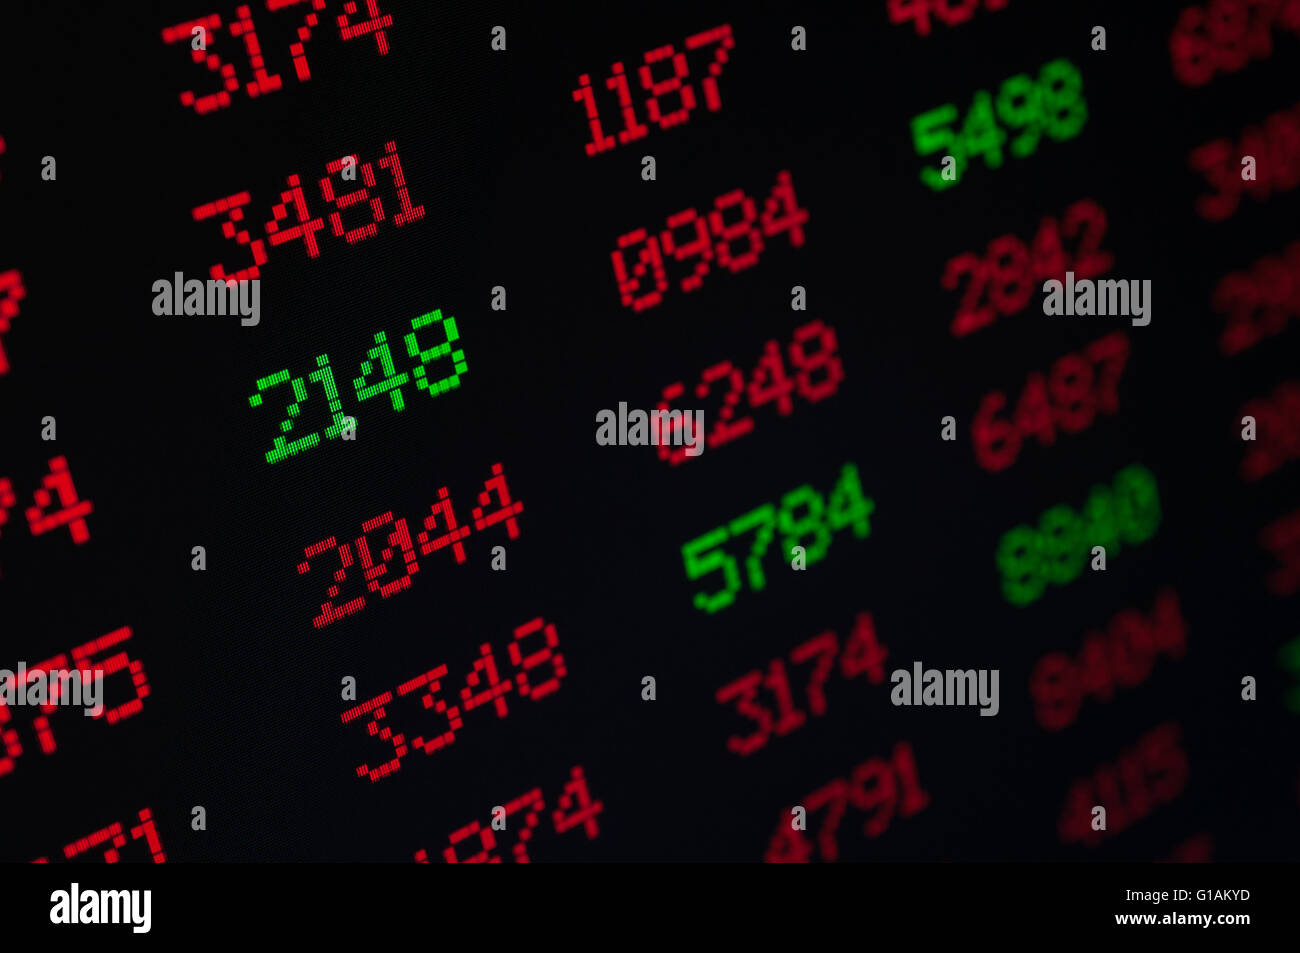 Stock Market - Digital Display With Red and Green Figures - Shallow Depth Of Field Stock Photo